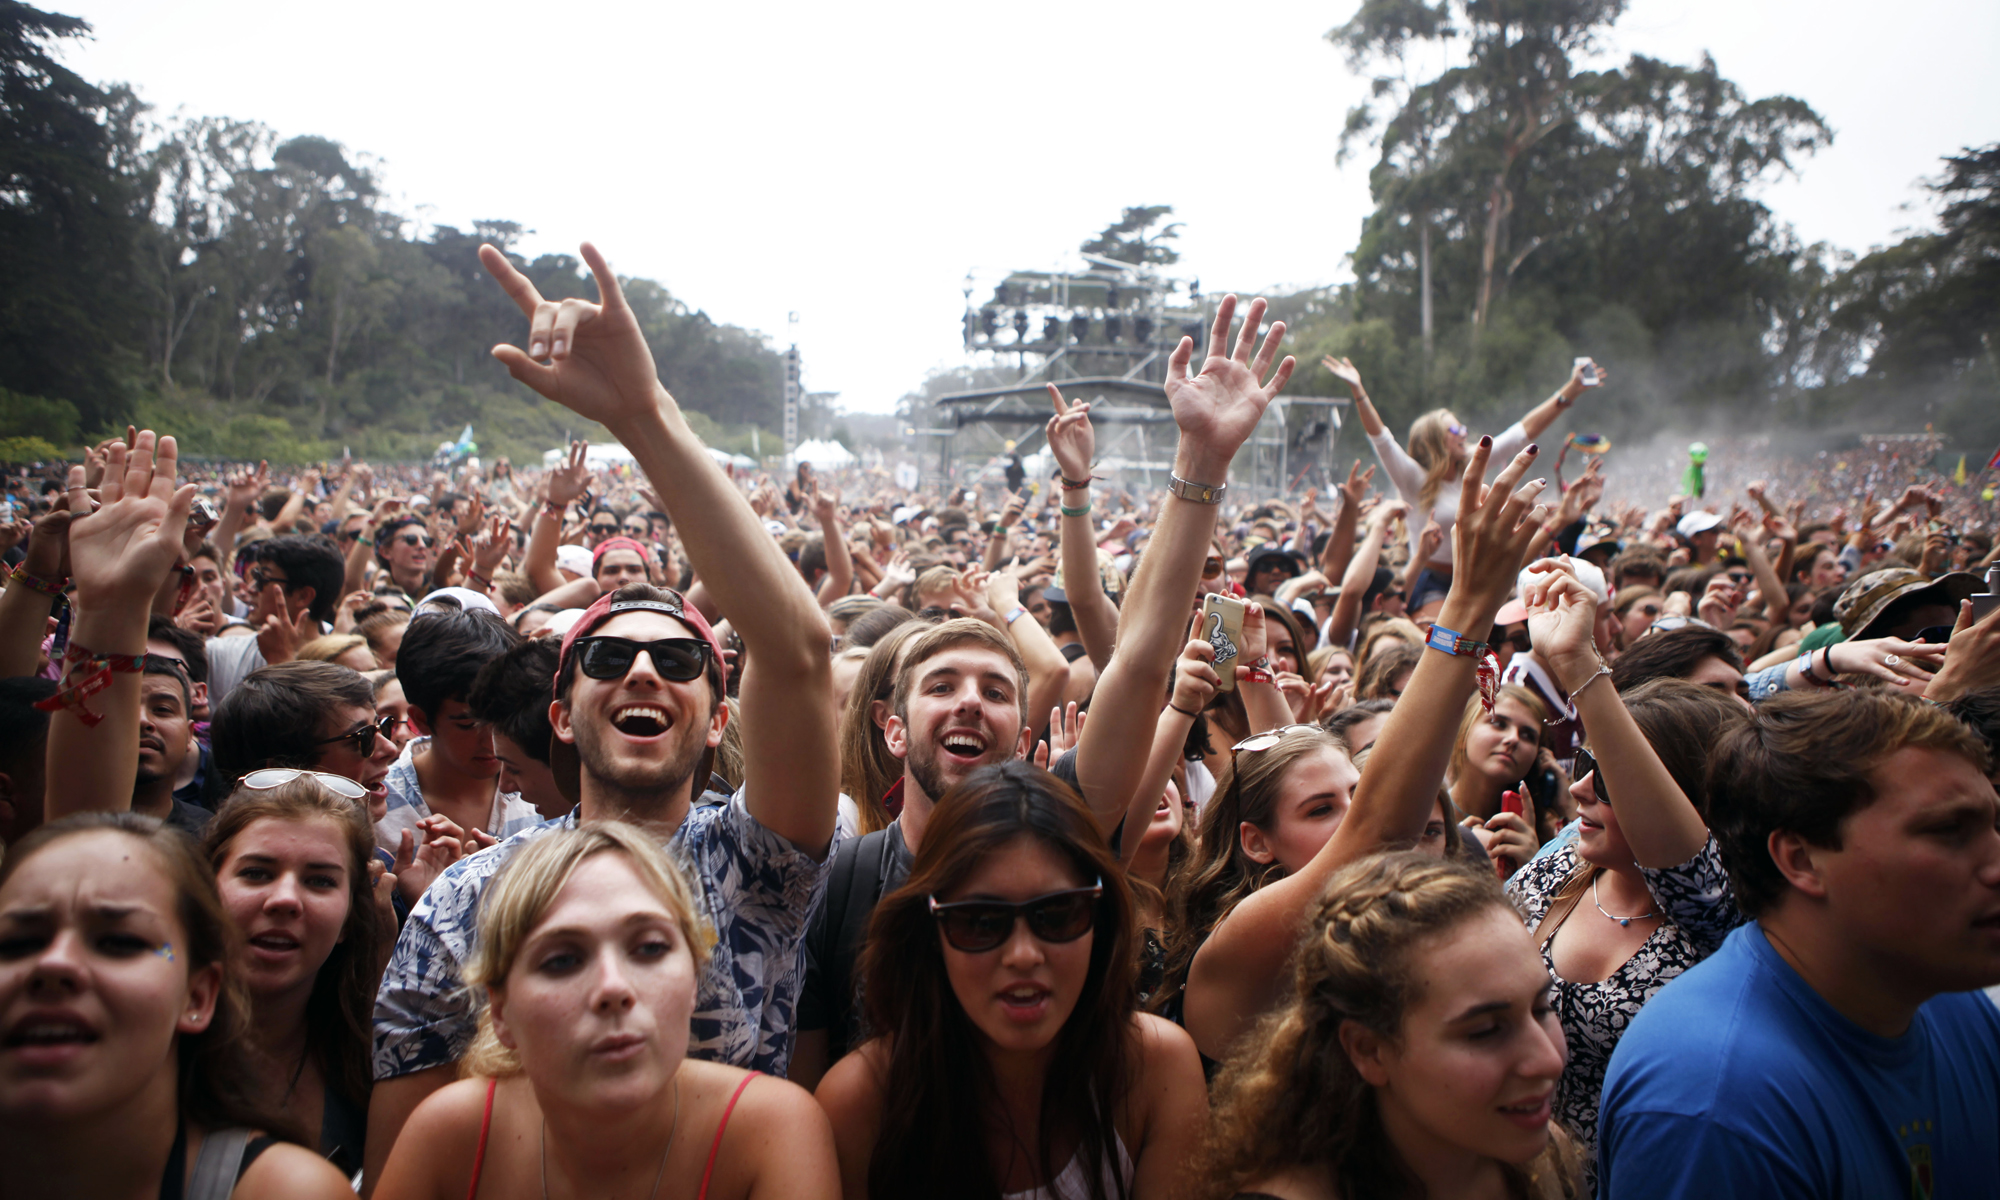 Fans cheer as Odesza performs during Outside Lands on Aug. 9, 2015.